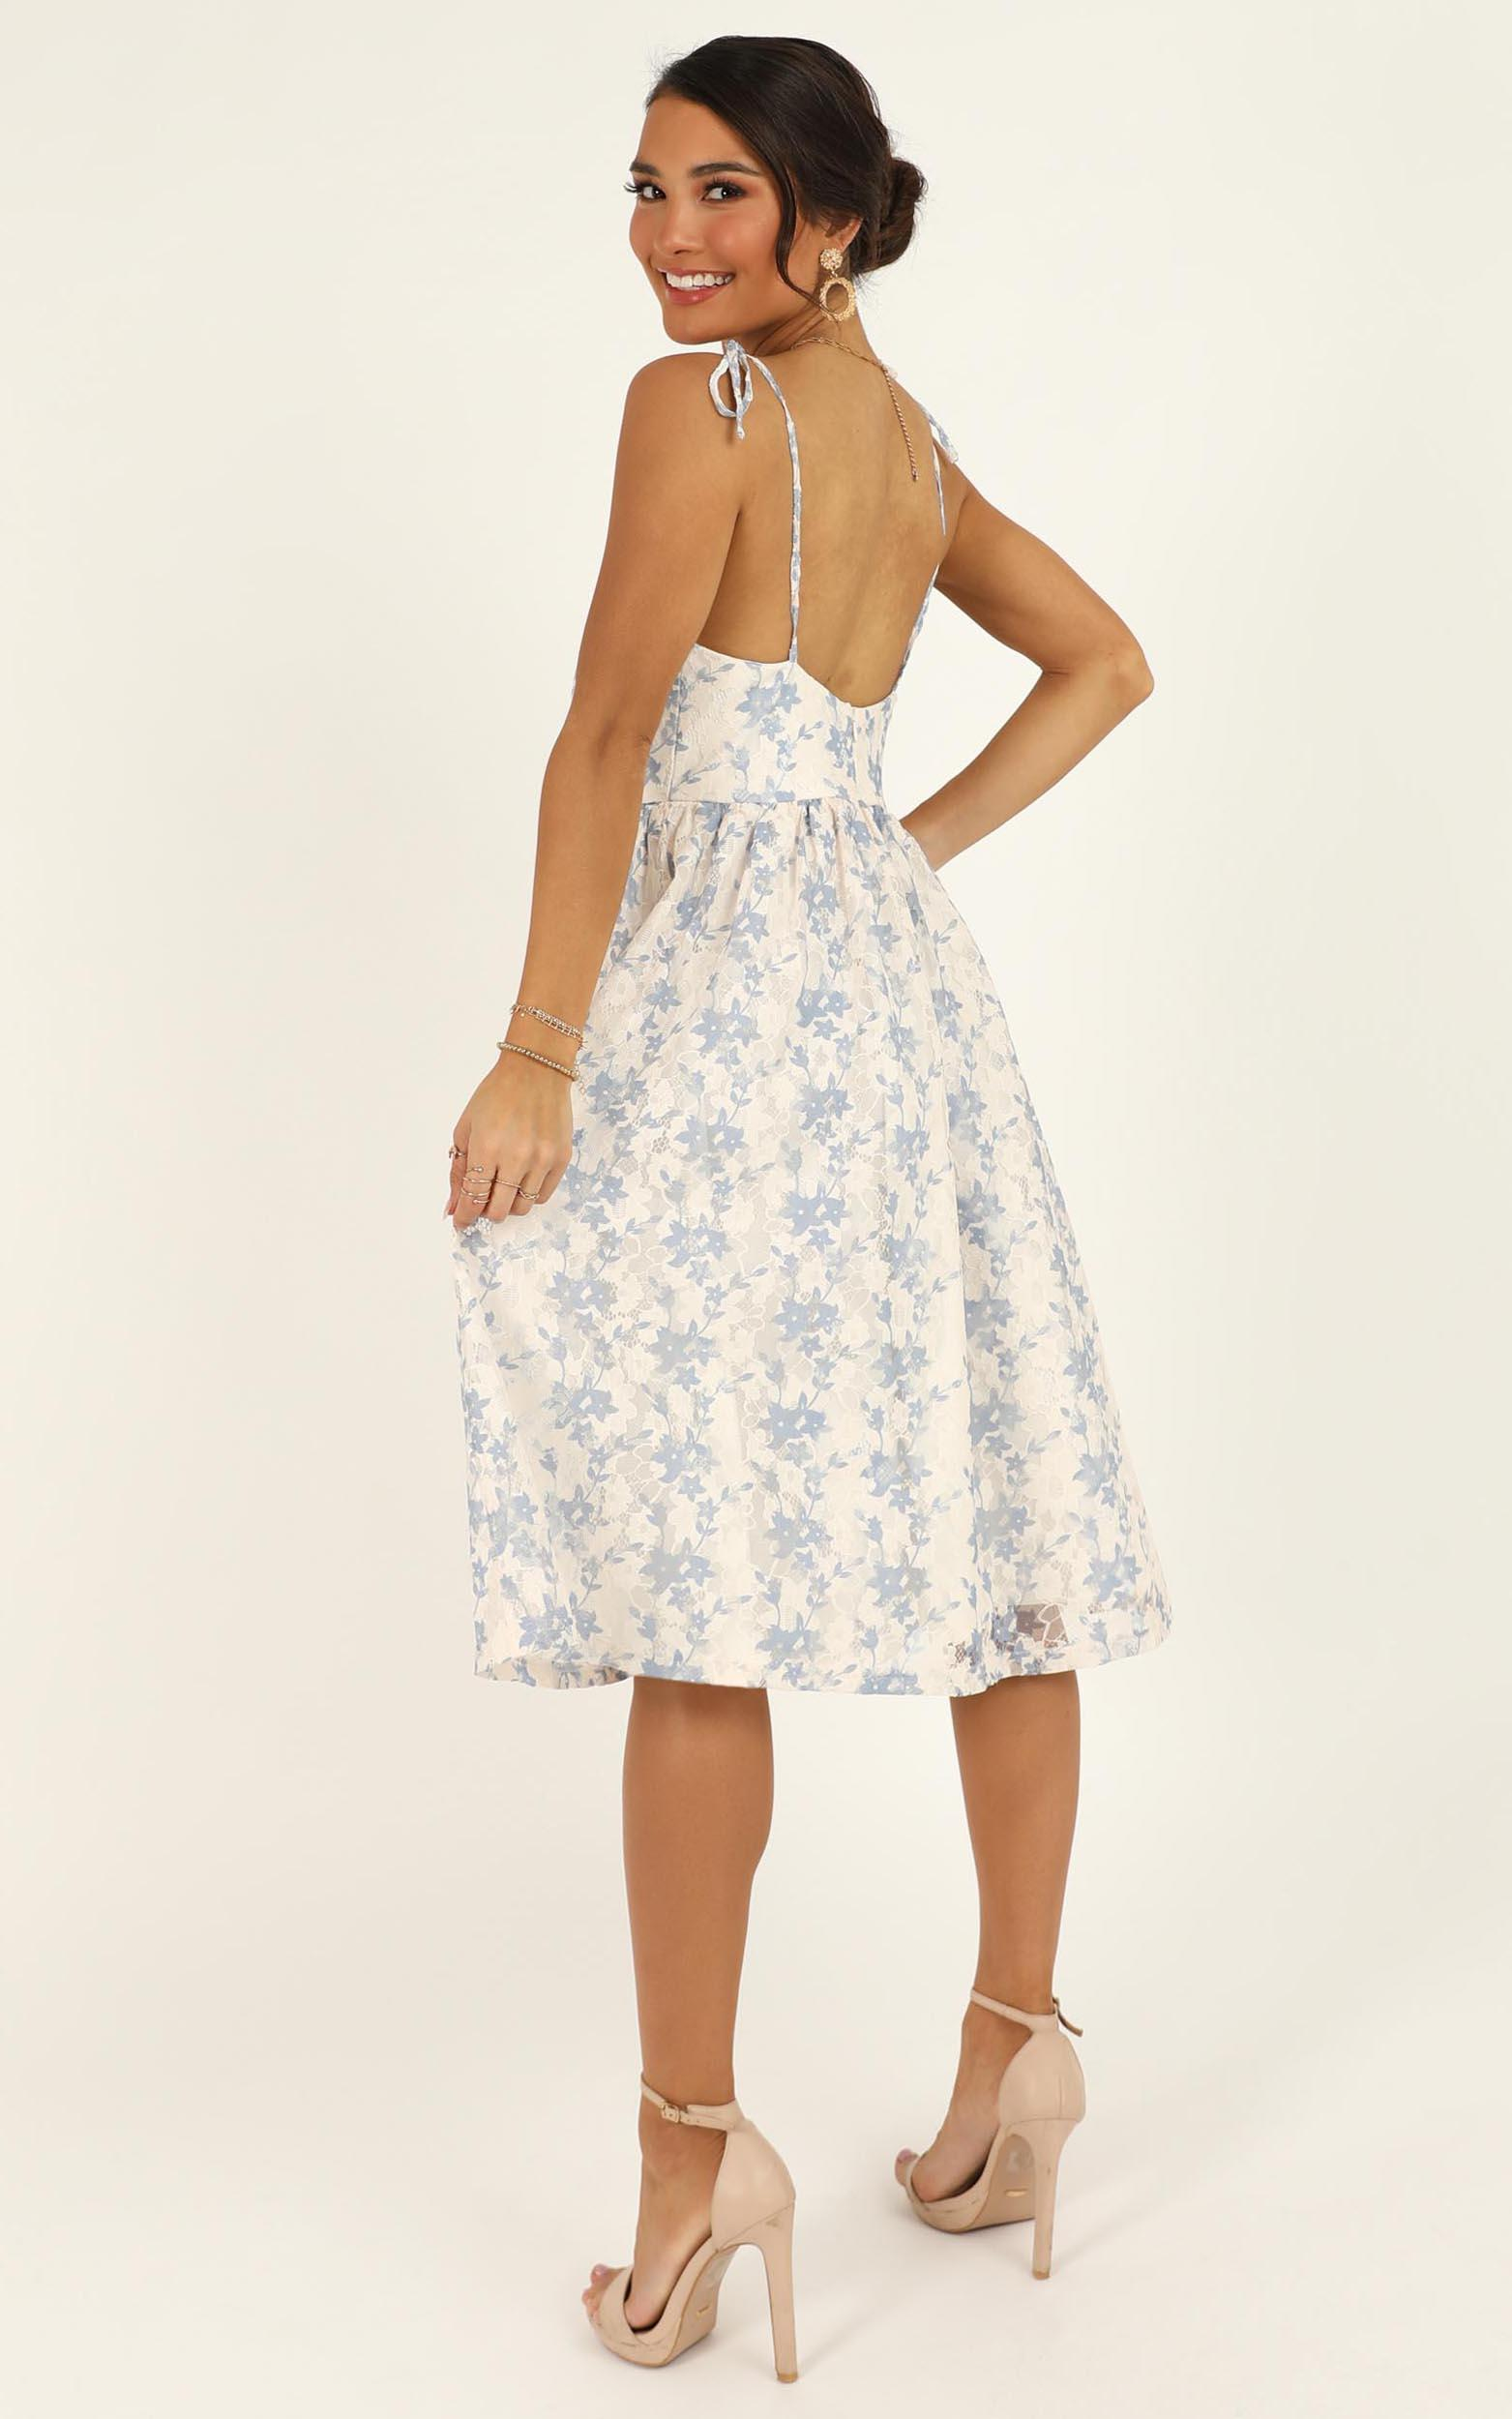 Lace Get It On Dress In white blue lace - 20 (XXXXL), Blue, hi-res image number null